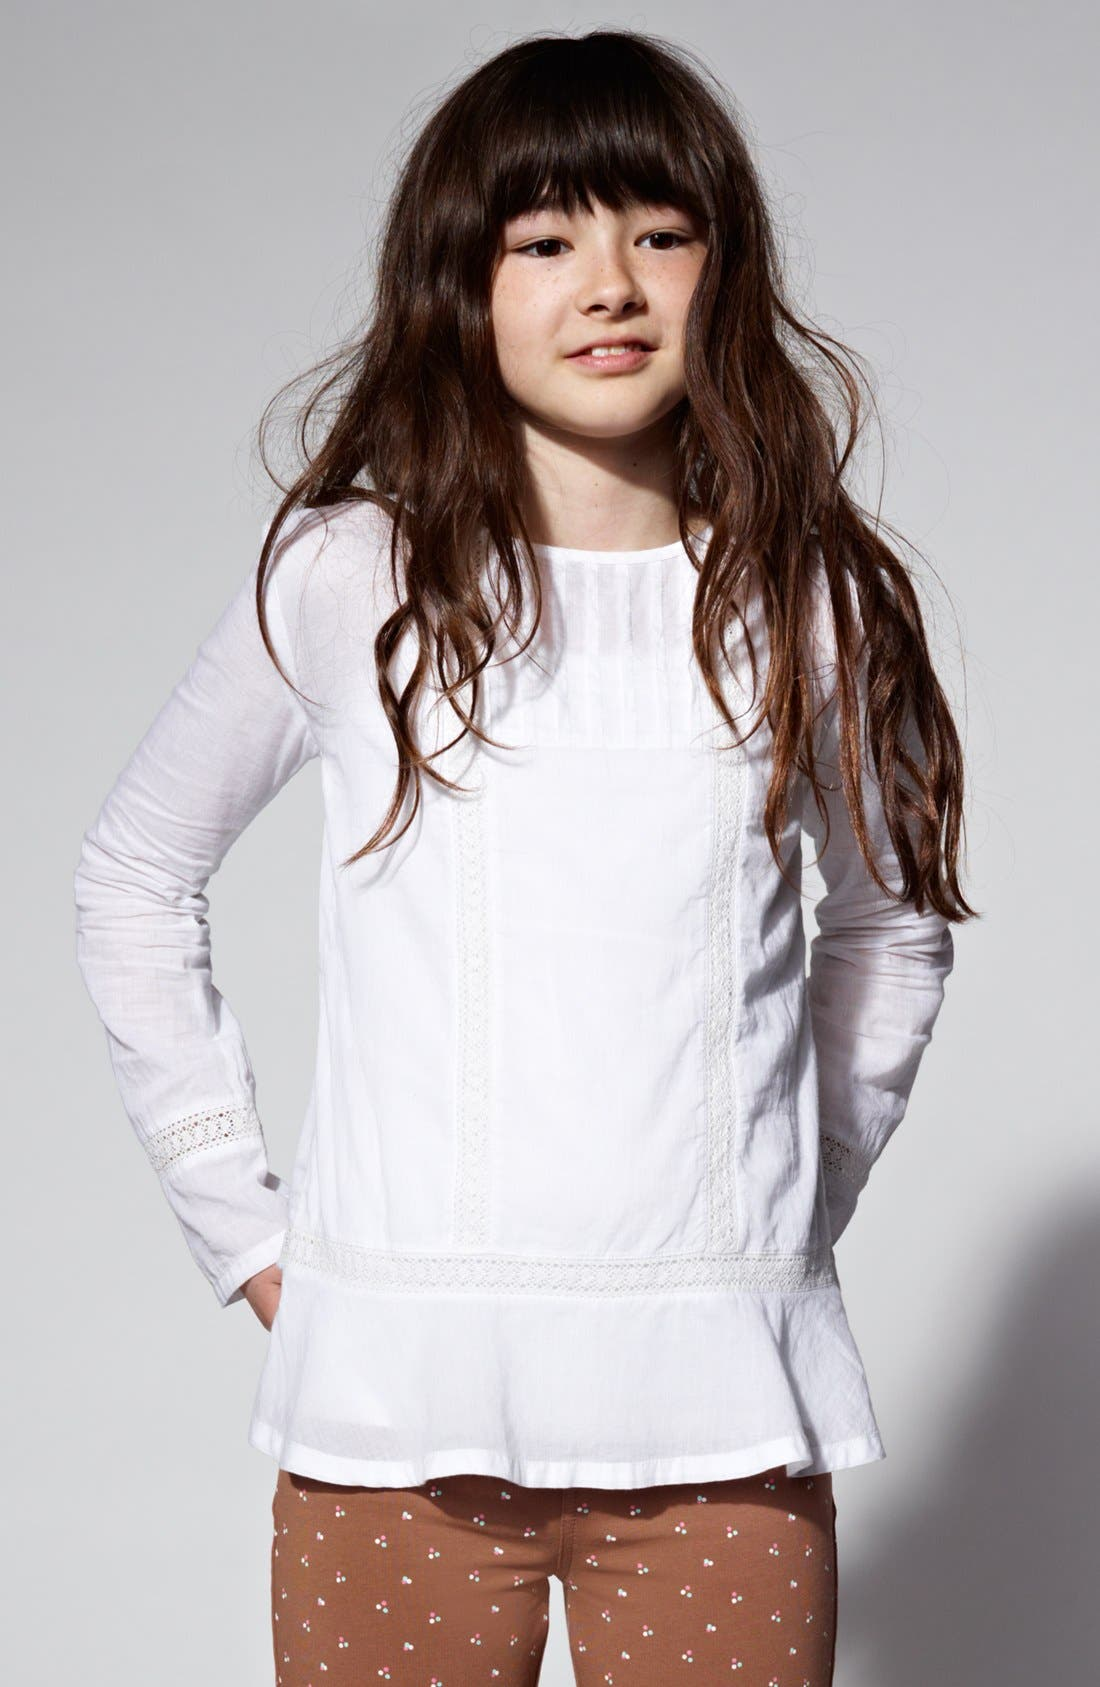 Alternate Image 1 Selected - Tucker + Tate 'Nicky' Woven Tunic (Big Girls)